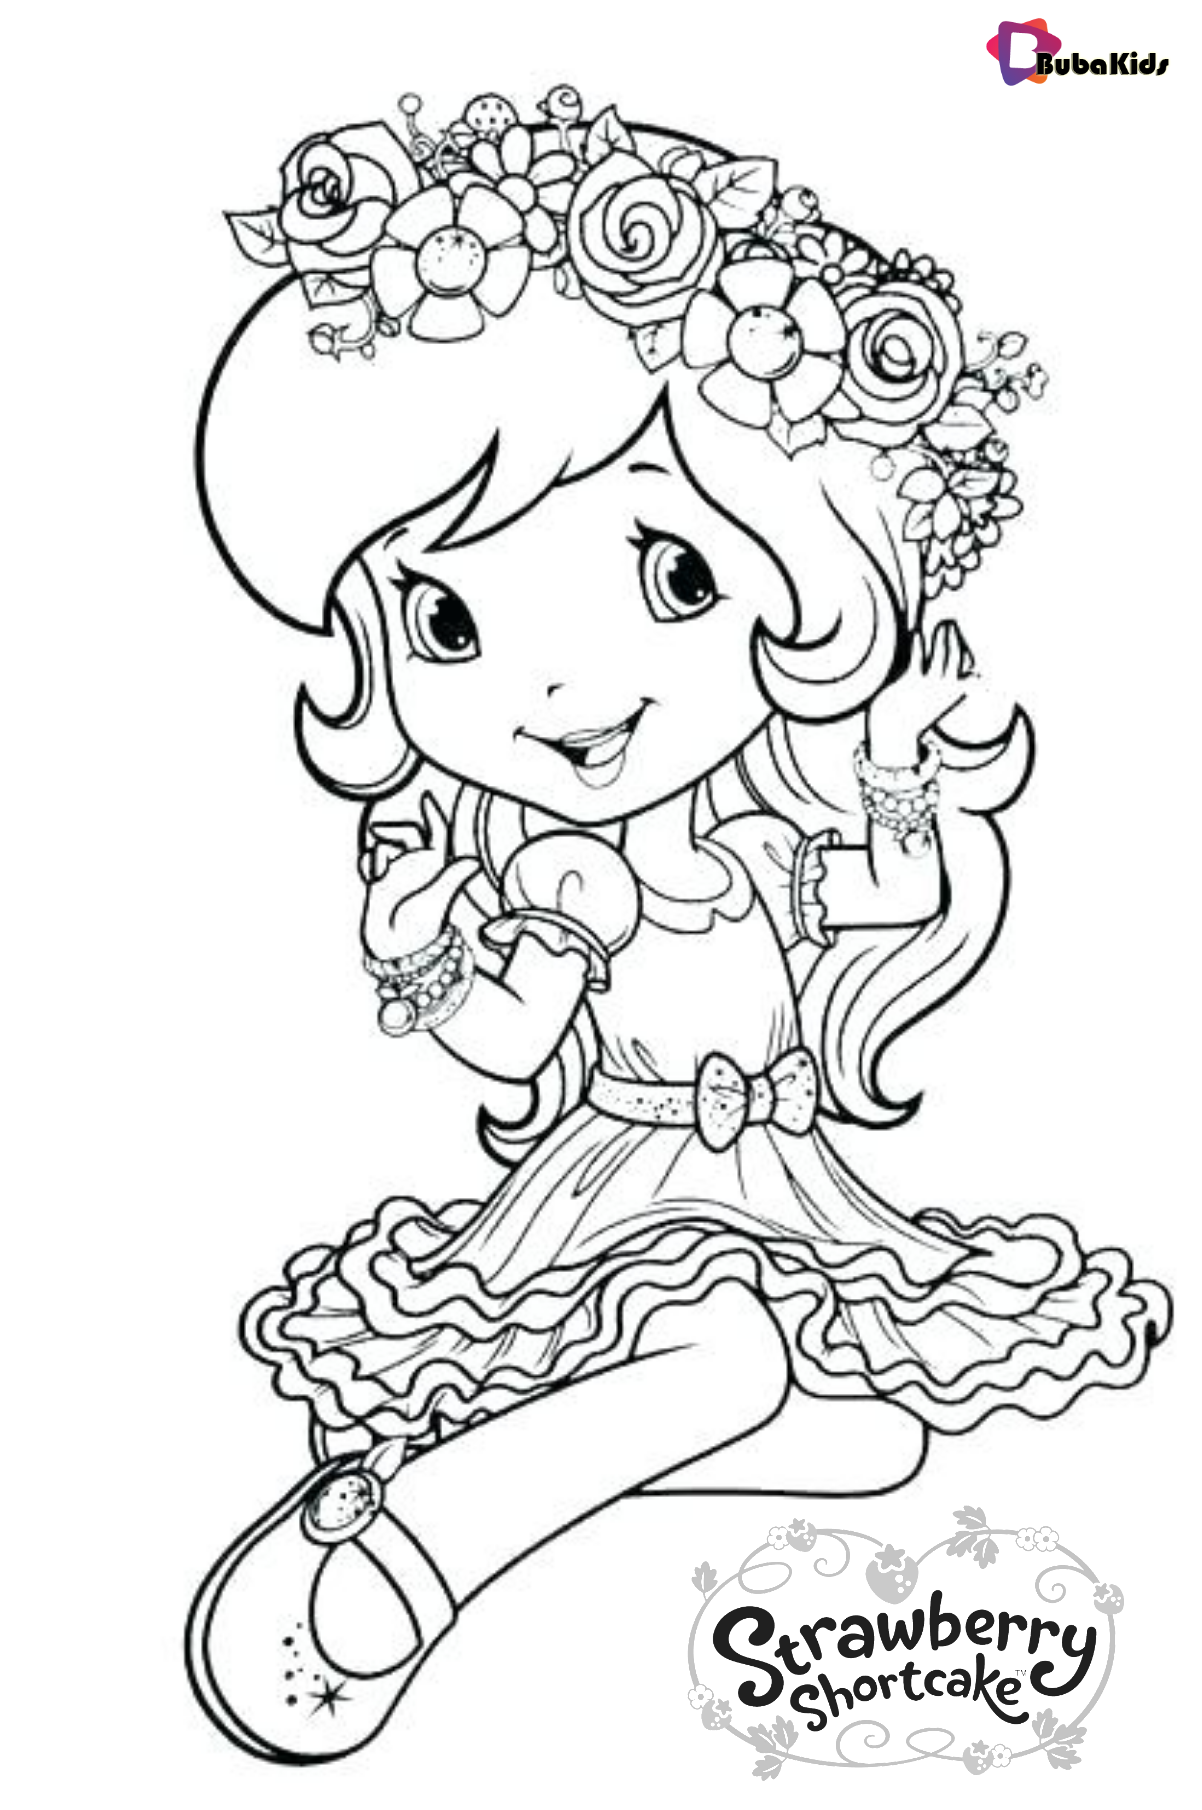 Free Printable Coloring Page Strawberry Shortcake Strawberry Shortcake Strawb Strawberry Shortcake Coloring Pages Cute Coloring Pages Cartoon Coloring Pages